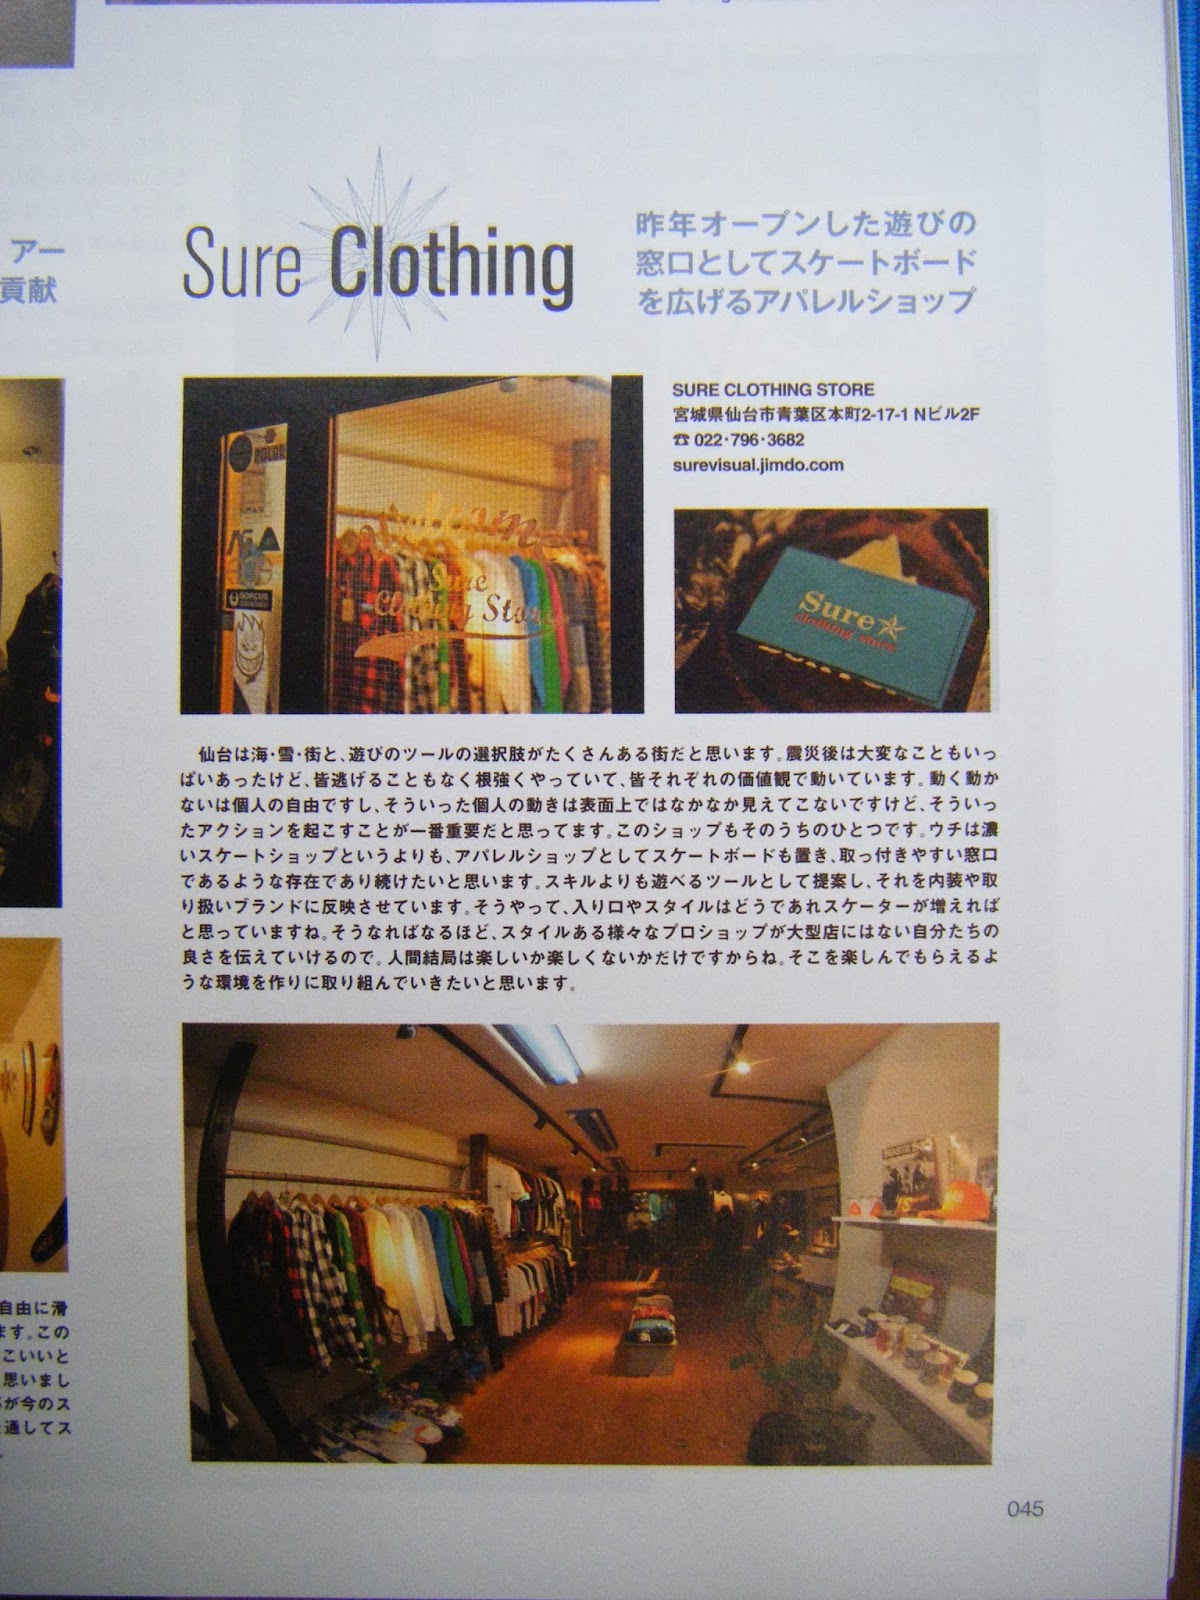 Trans clothing store